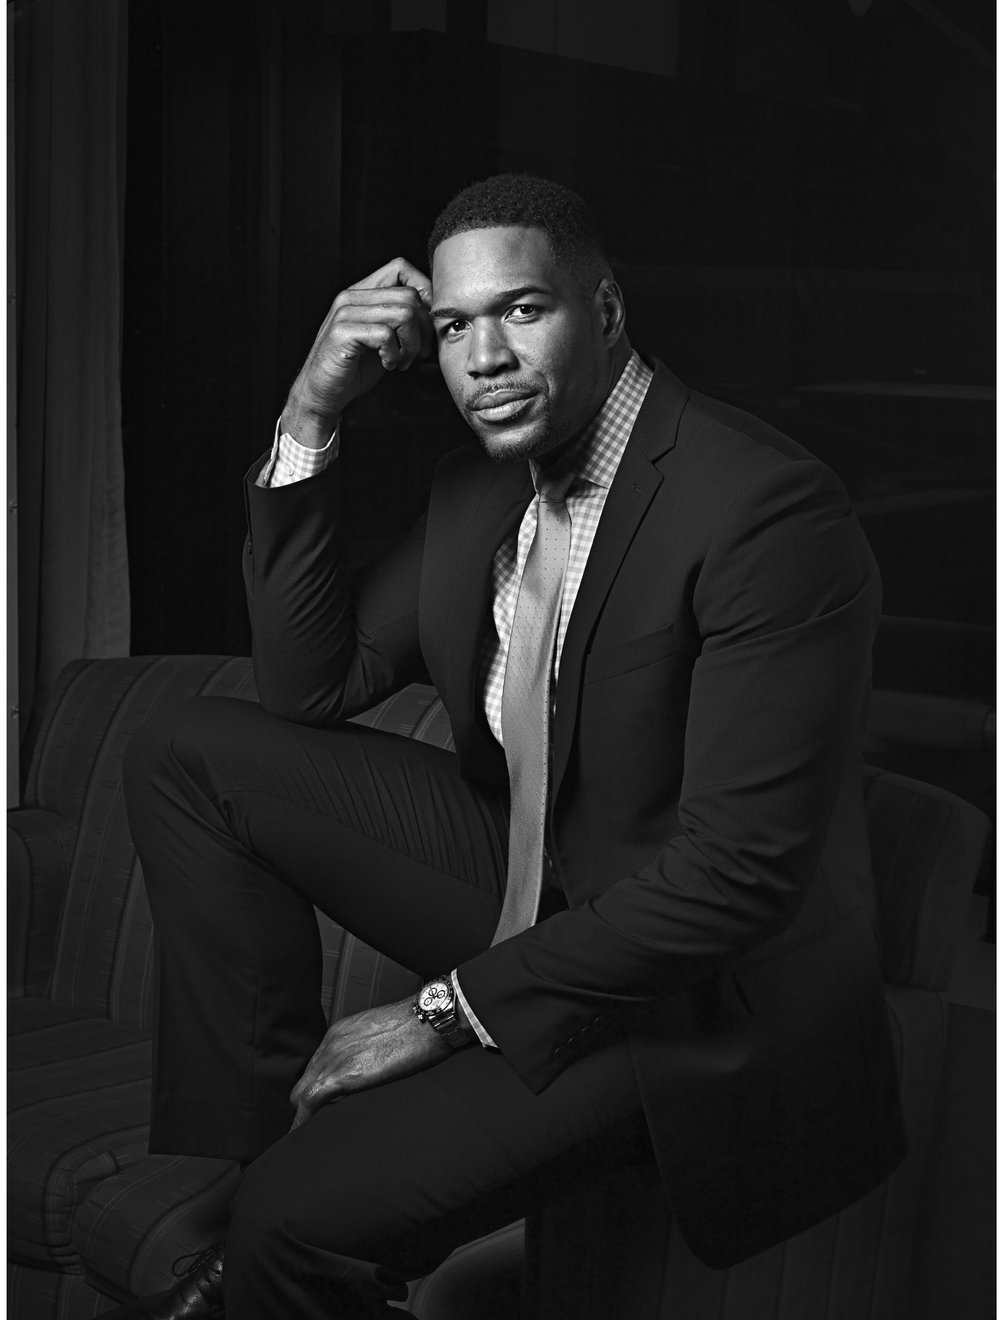 MICHAEL STRAHAN | MEDIA PERSONALITY, FORMER NFL PLAYER